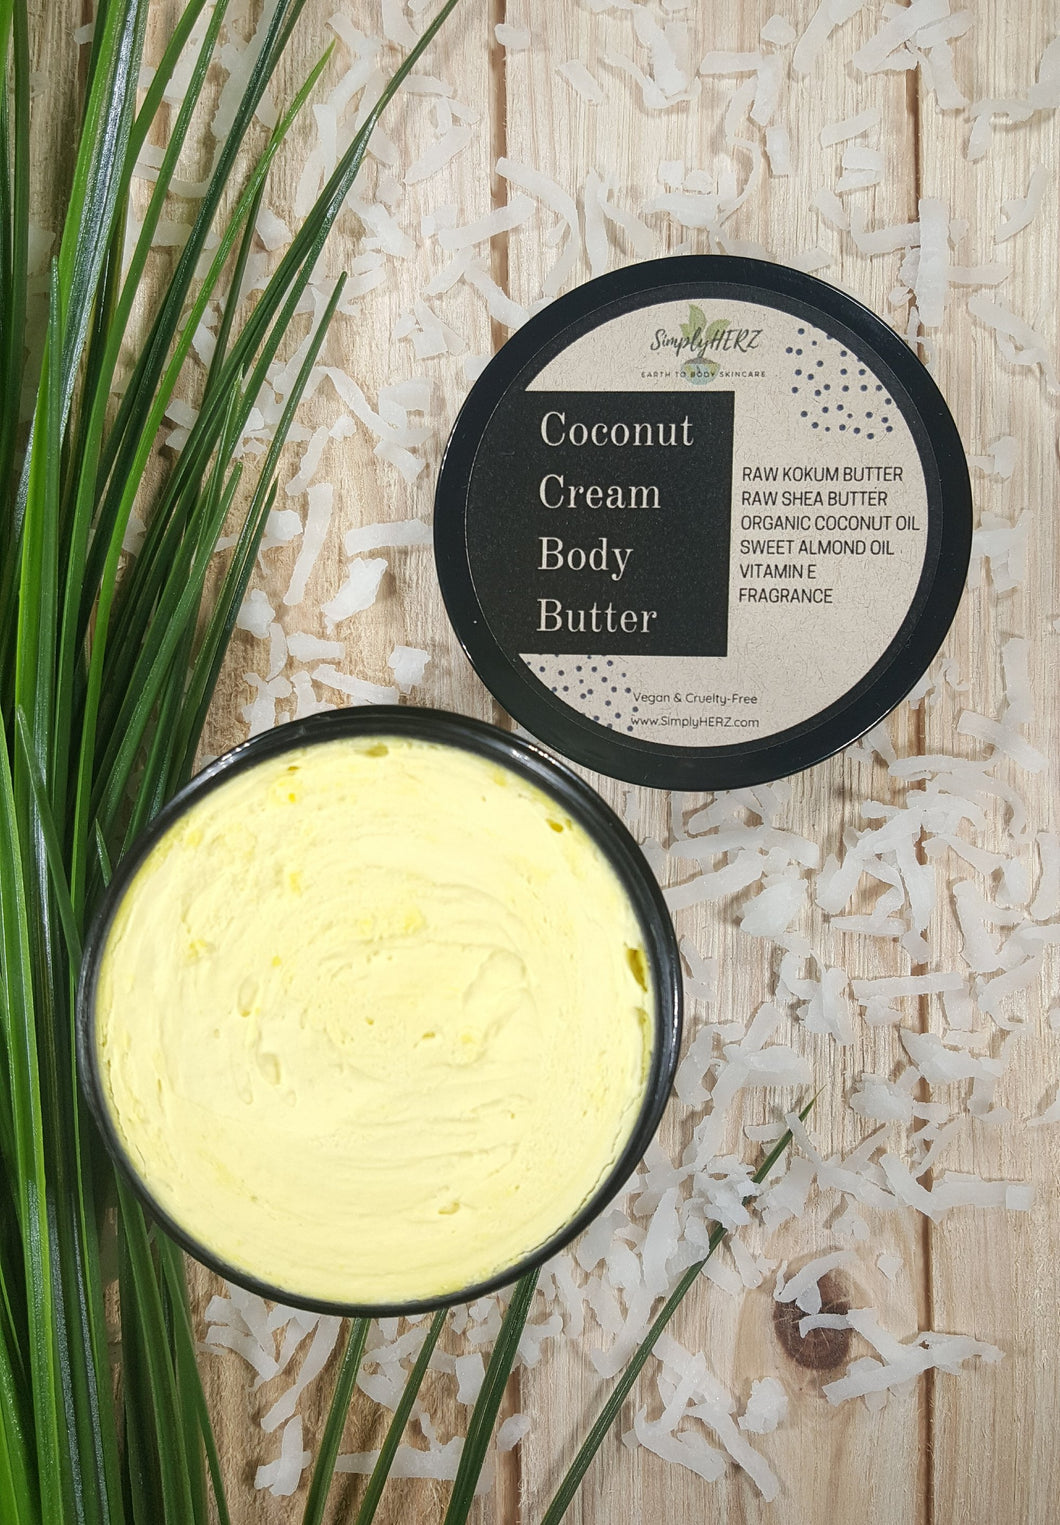 Simply Herz Coconut Body Butter